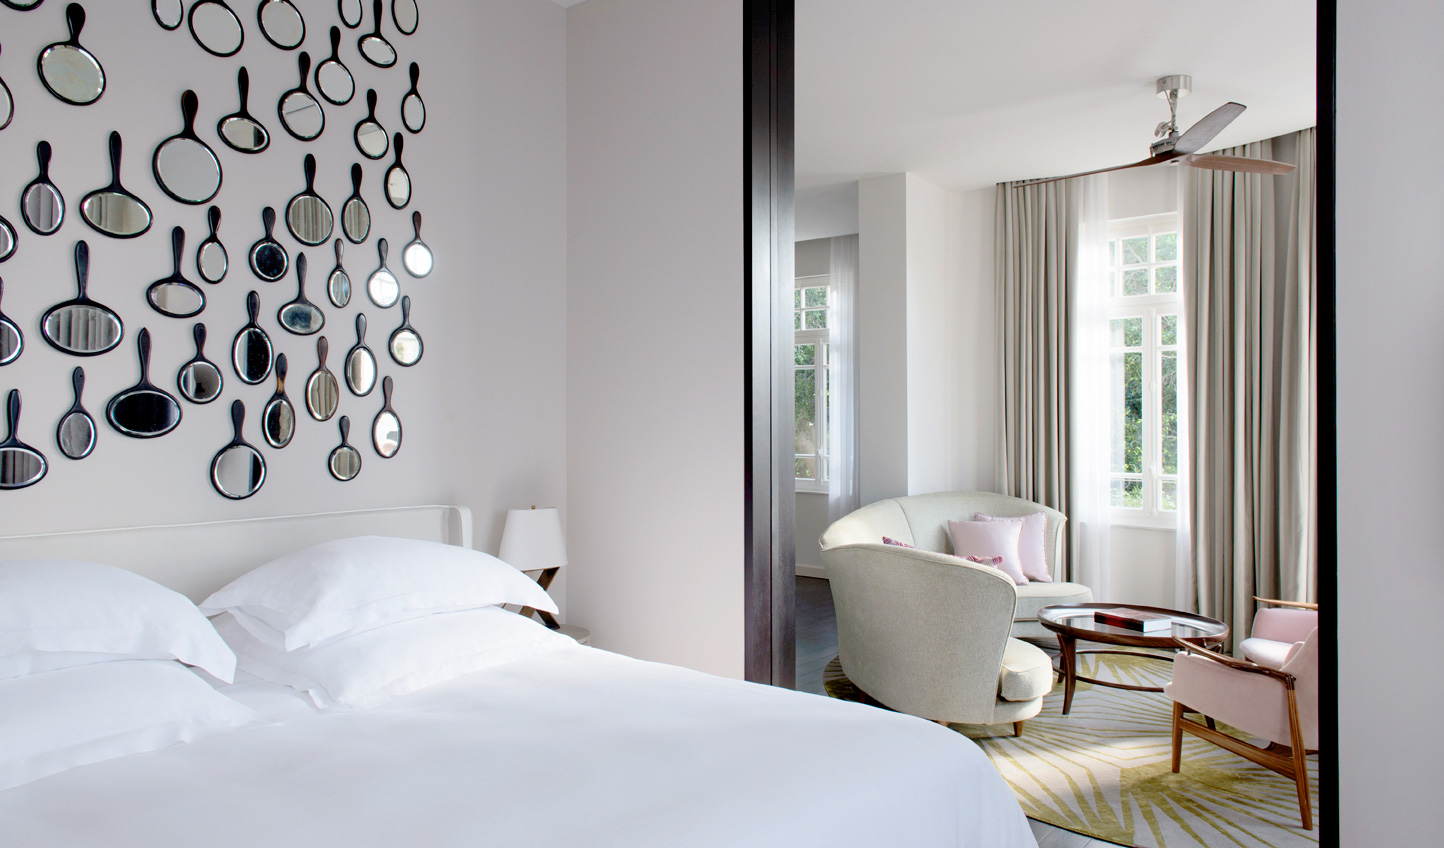 Classy and elegant, the rooms and suites make for a welcome break